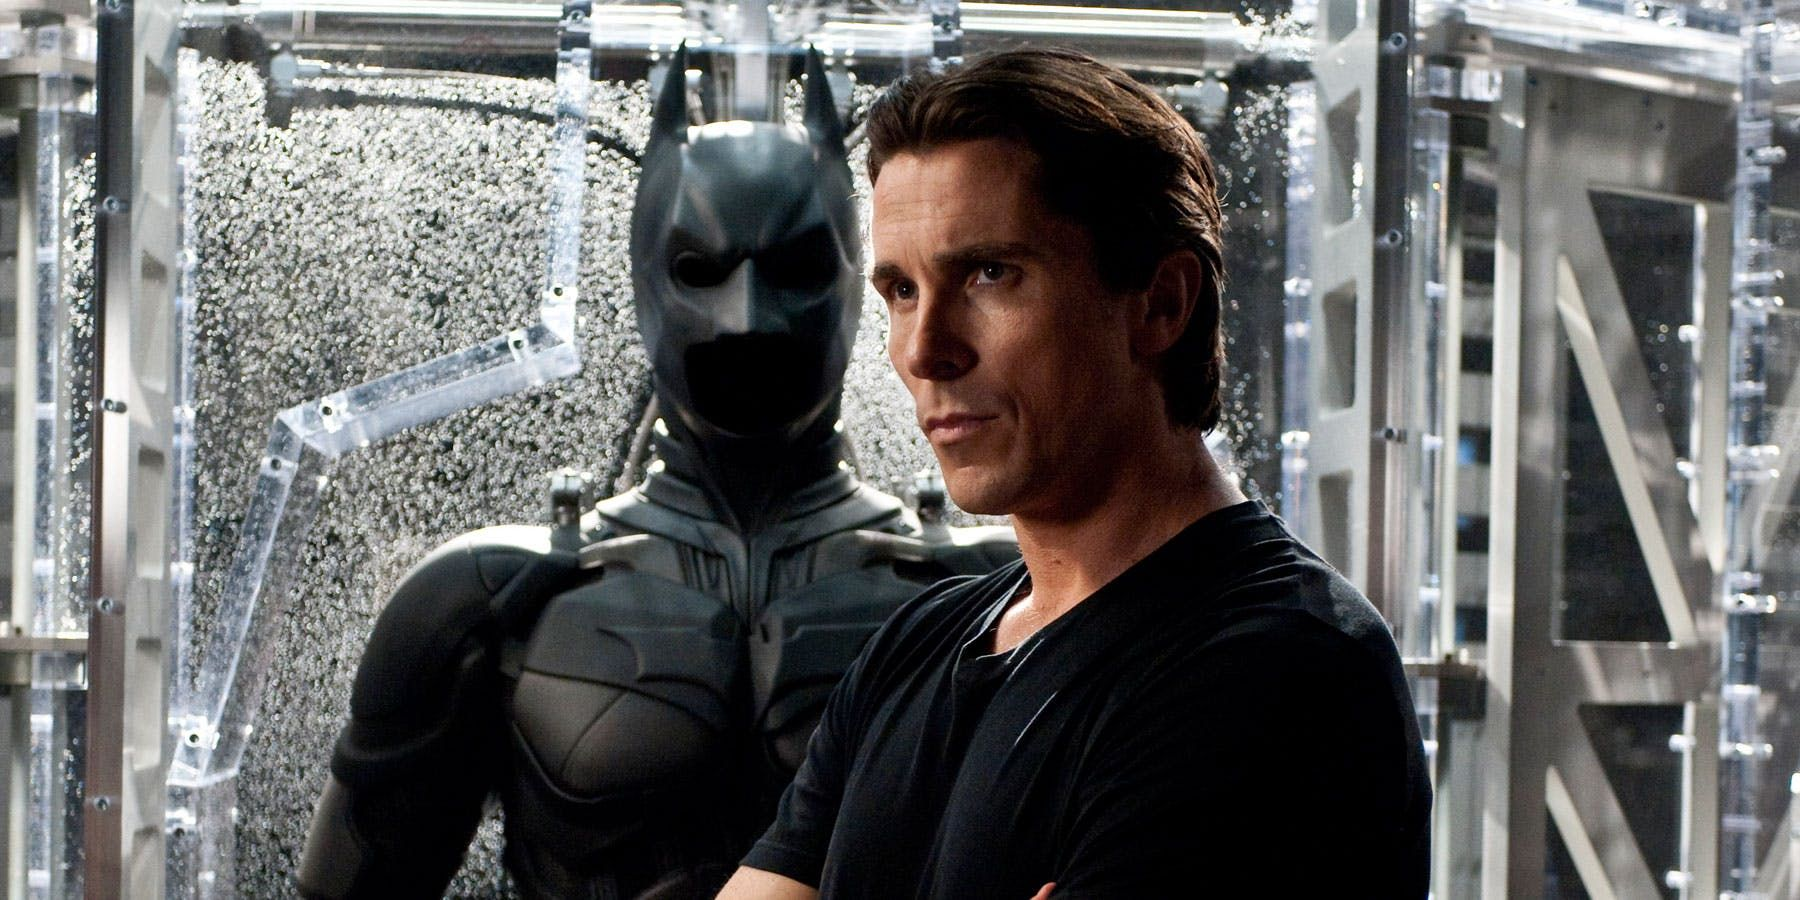 The Dark Knight Rises Pitch Meeting: That's A Lovely, Lovely Voice